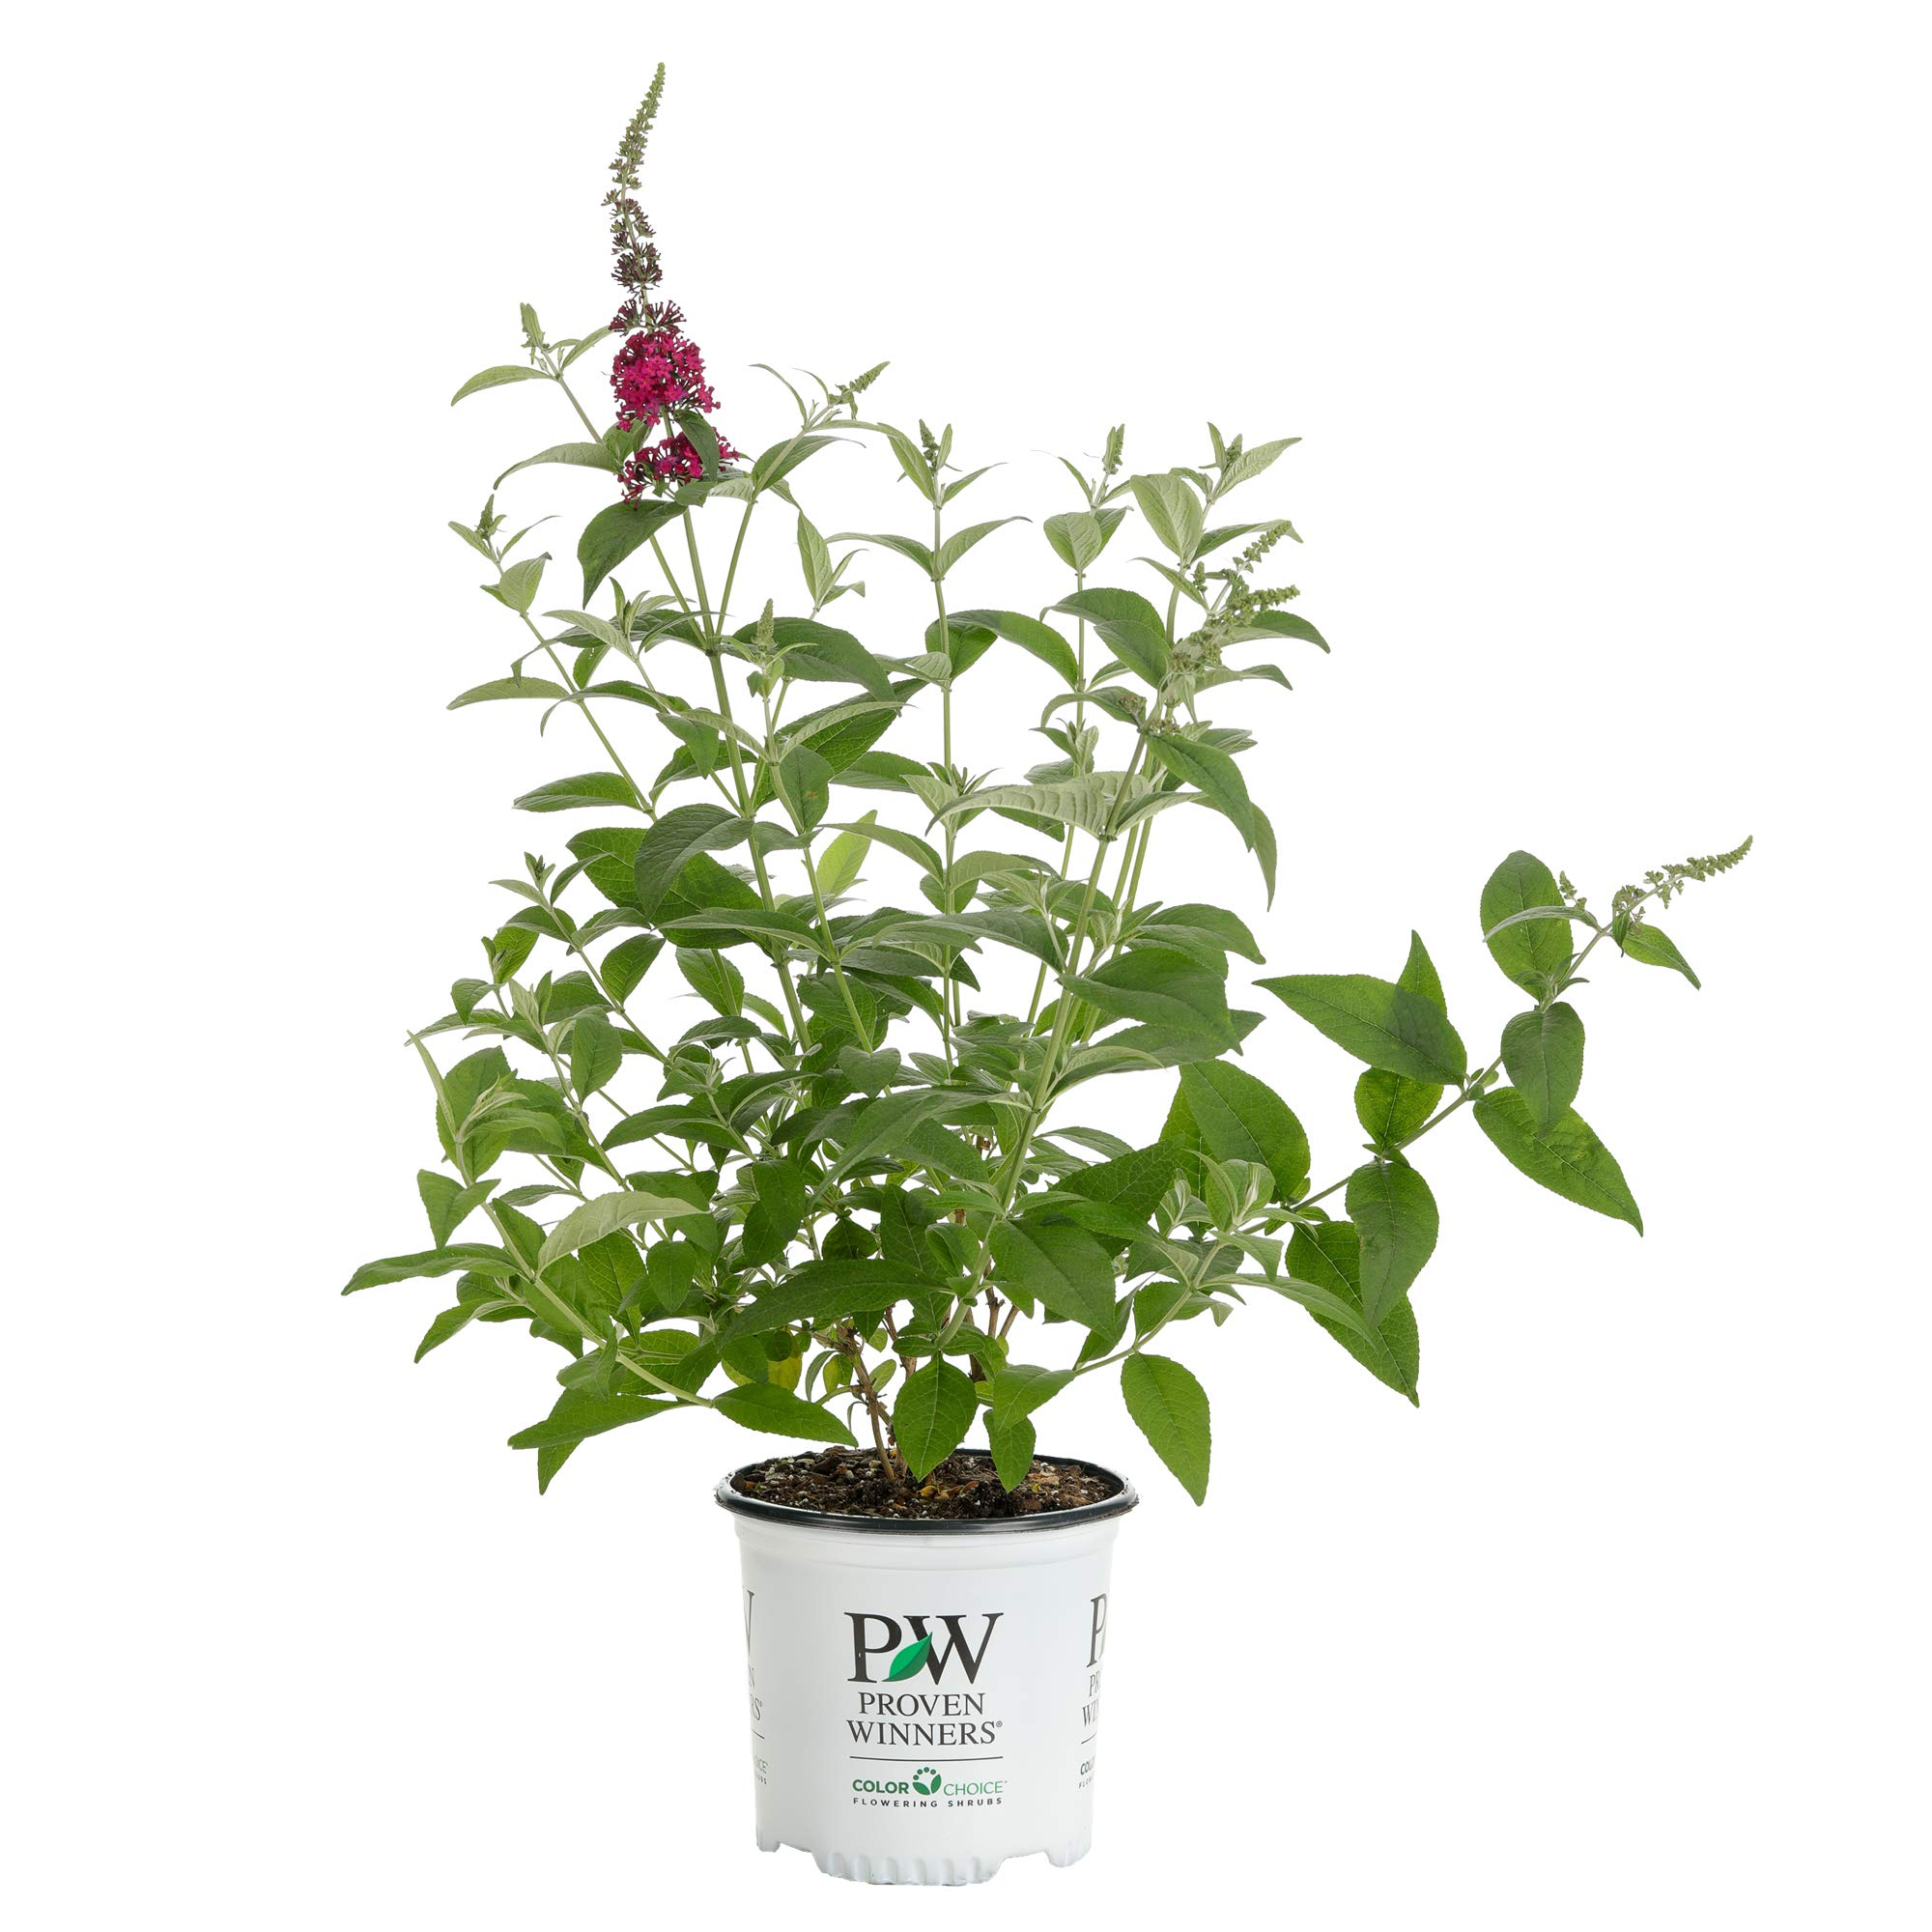 1 Gal. Miss Molly Butterfly Bush (Buddleia) Live Shrub, Deep Pink Flowers